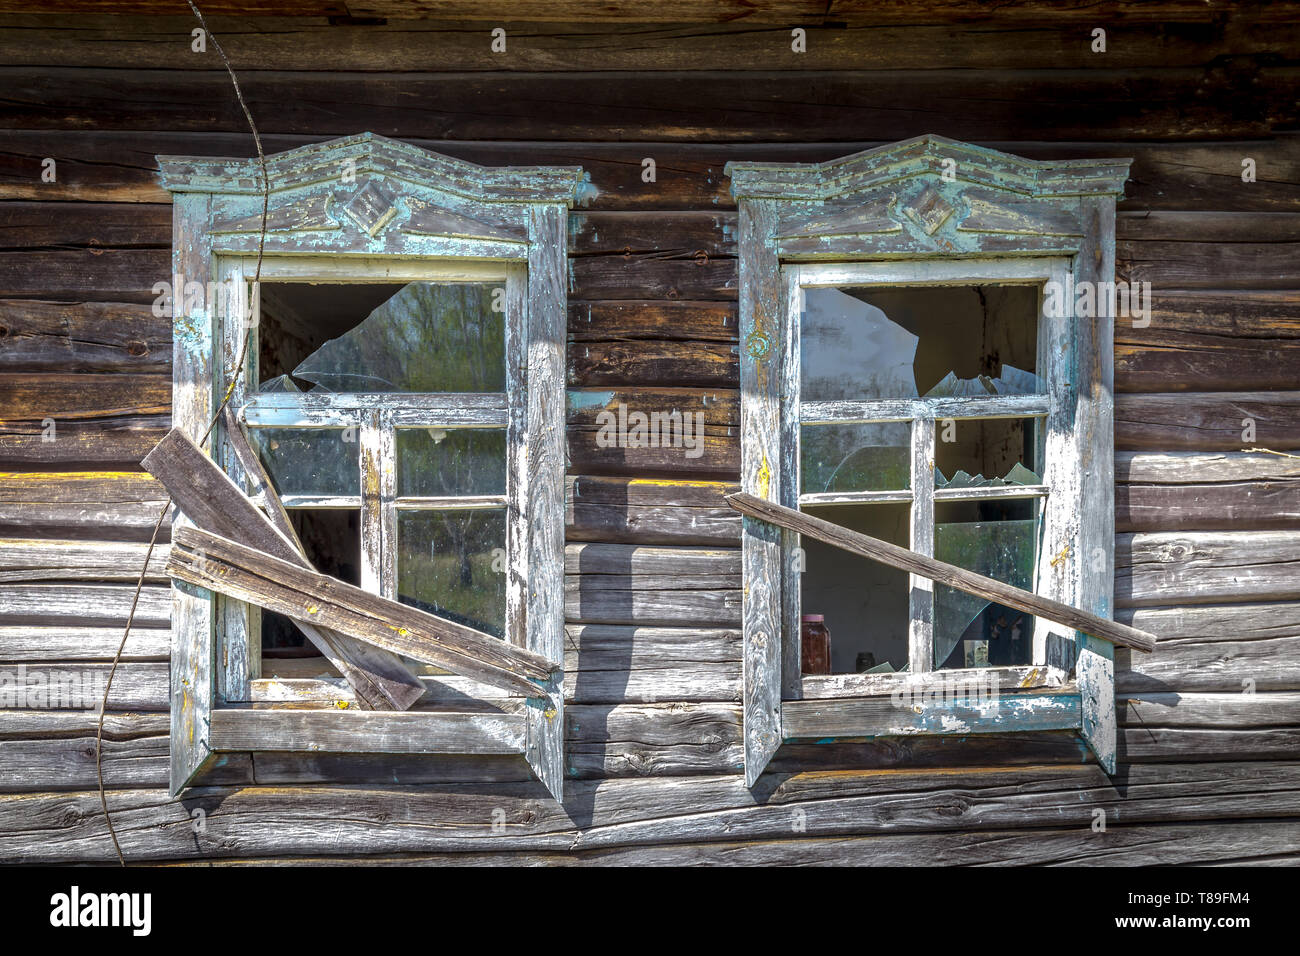 Windows with broken glass of an old abandoned house in Belarus Chernobyl exclusion zone in Belarus - Stock Image